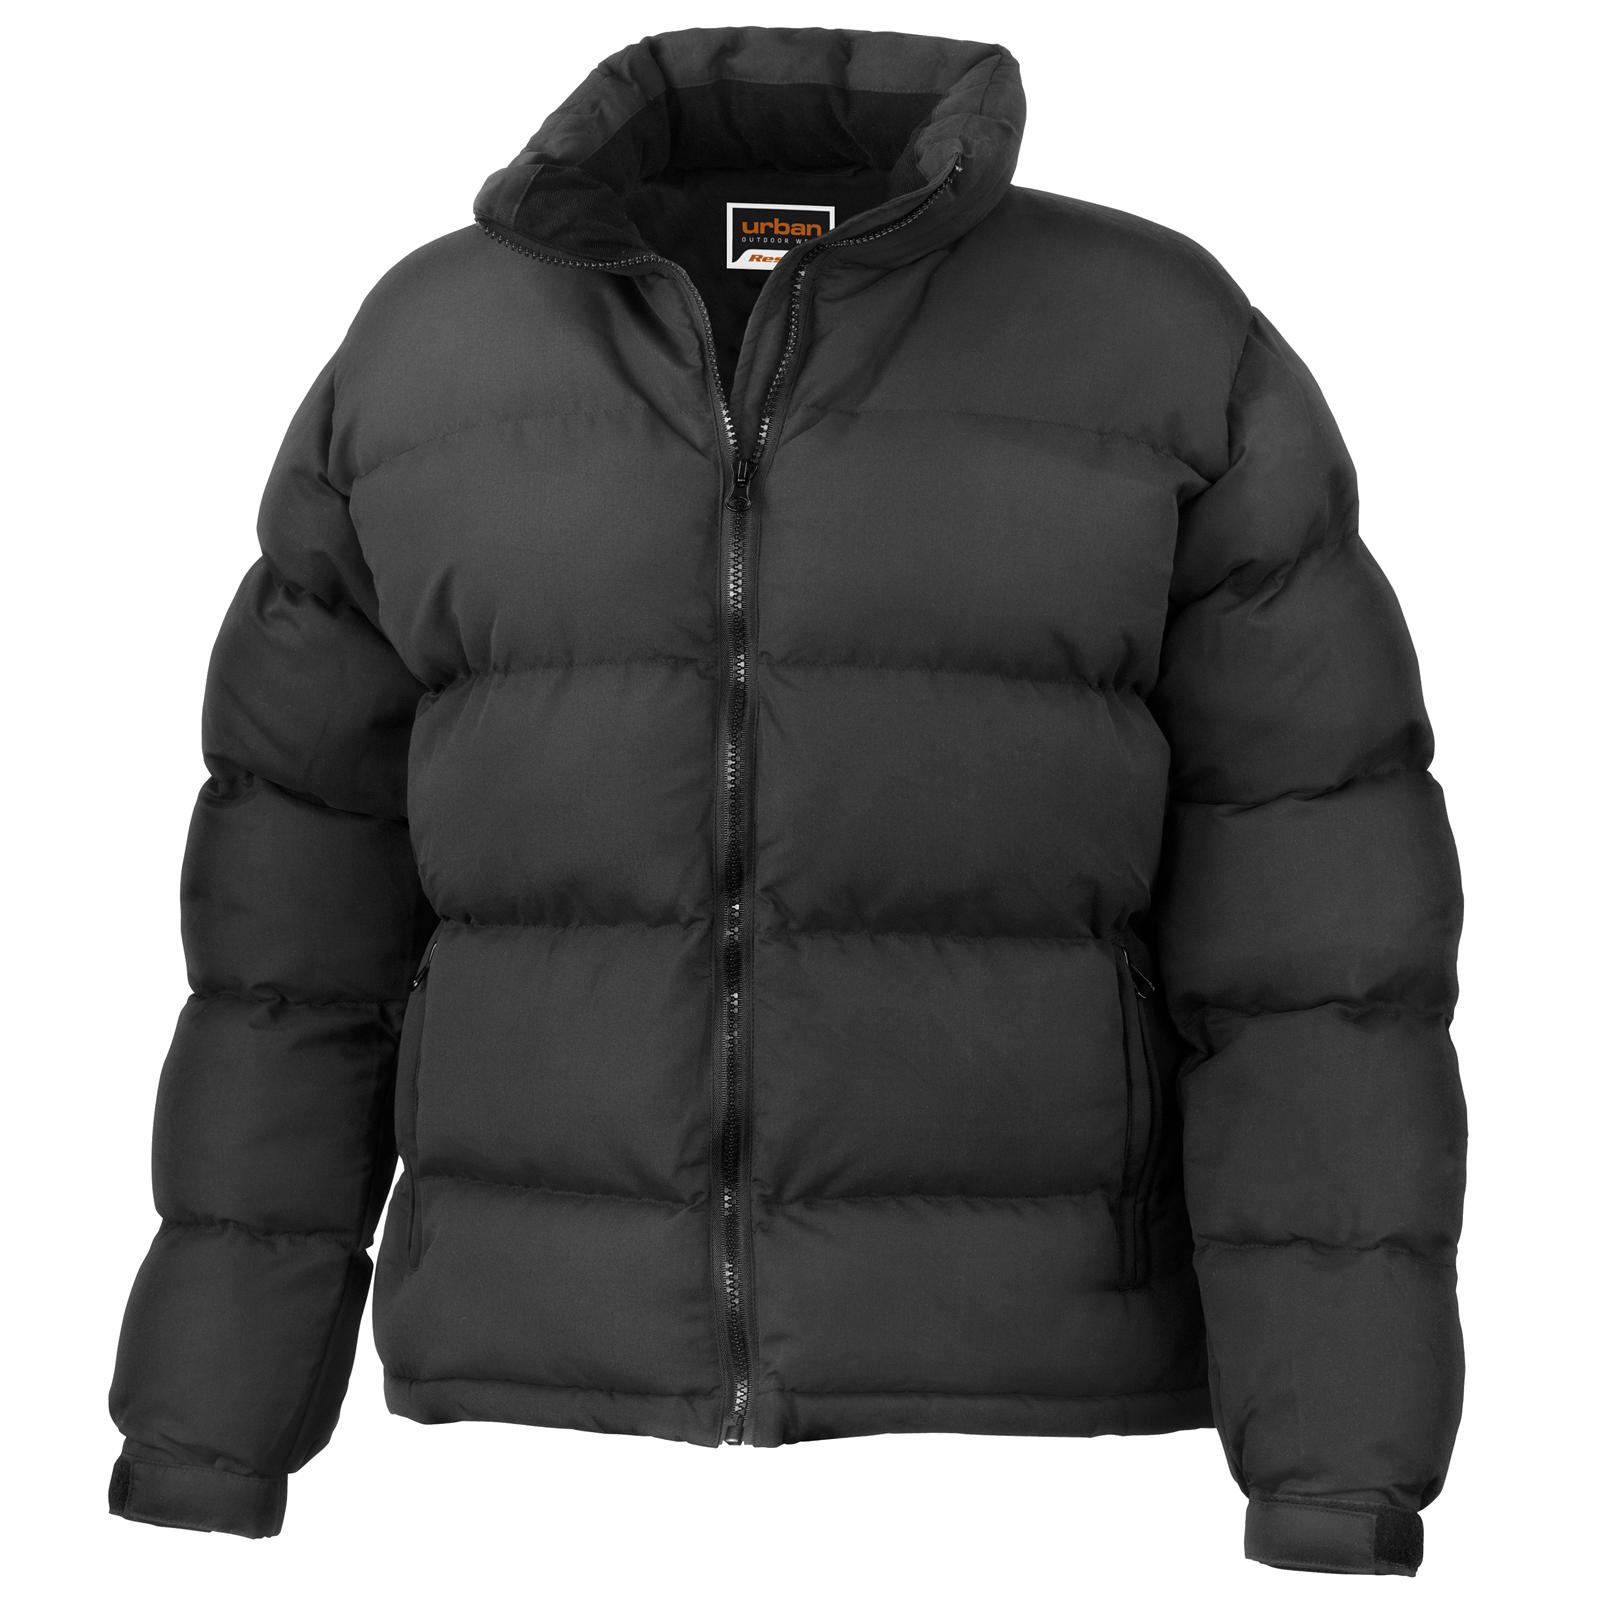 Save up to 70% on stylish puffer jackets and coats for women. Discover quilted, down and faux fur hooded puffer jackets for women at prices you'll love.